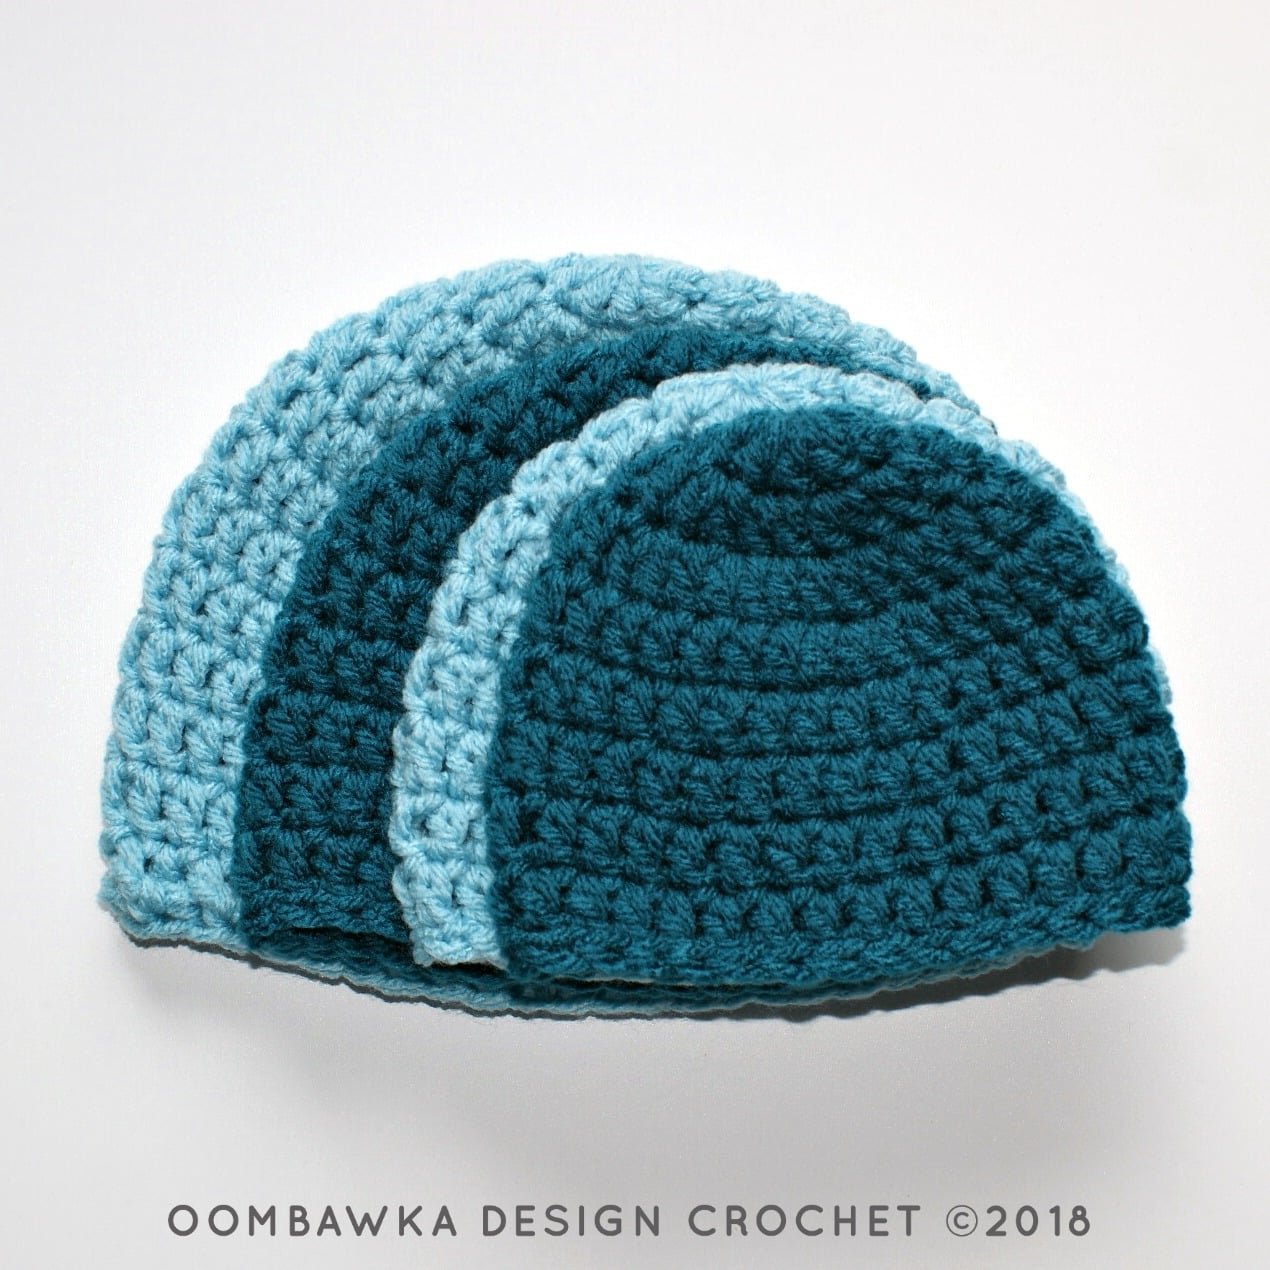 297c32fd5cd Simple Double Crochet Hat Pattern. • Oombawka Design Crochet